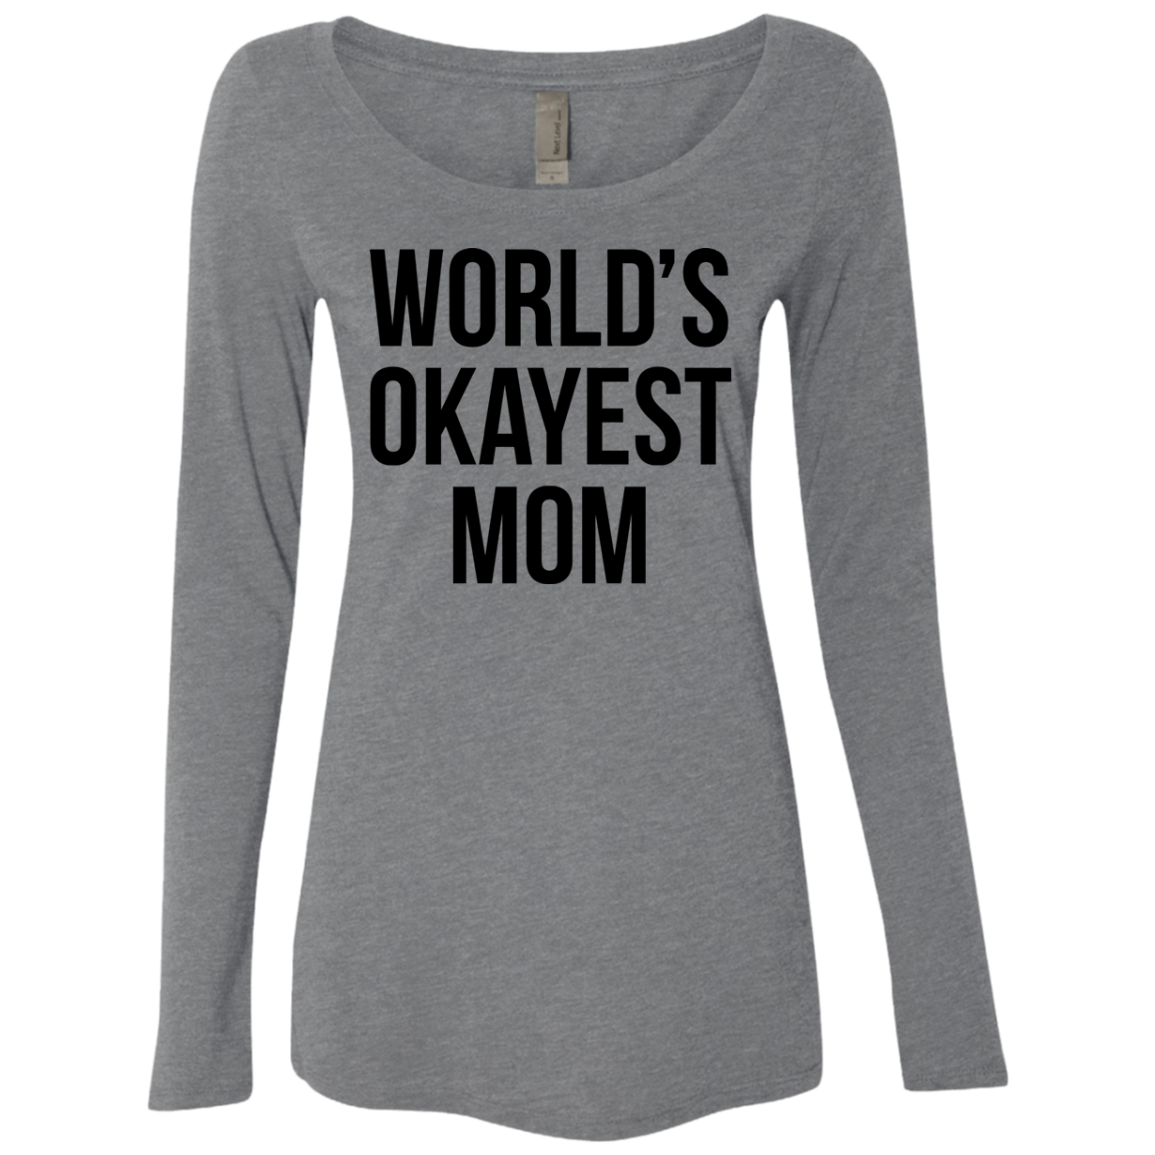 World's Okayest Mom Women's Long Sleeve Tee